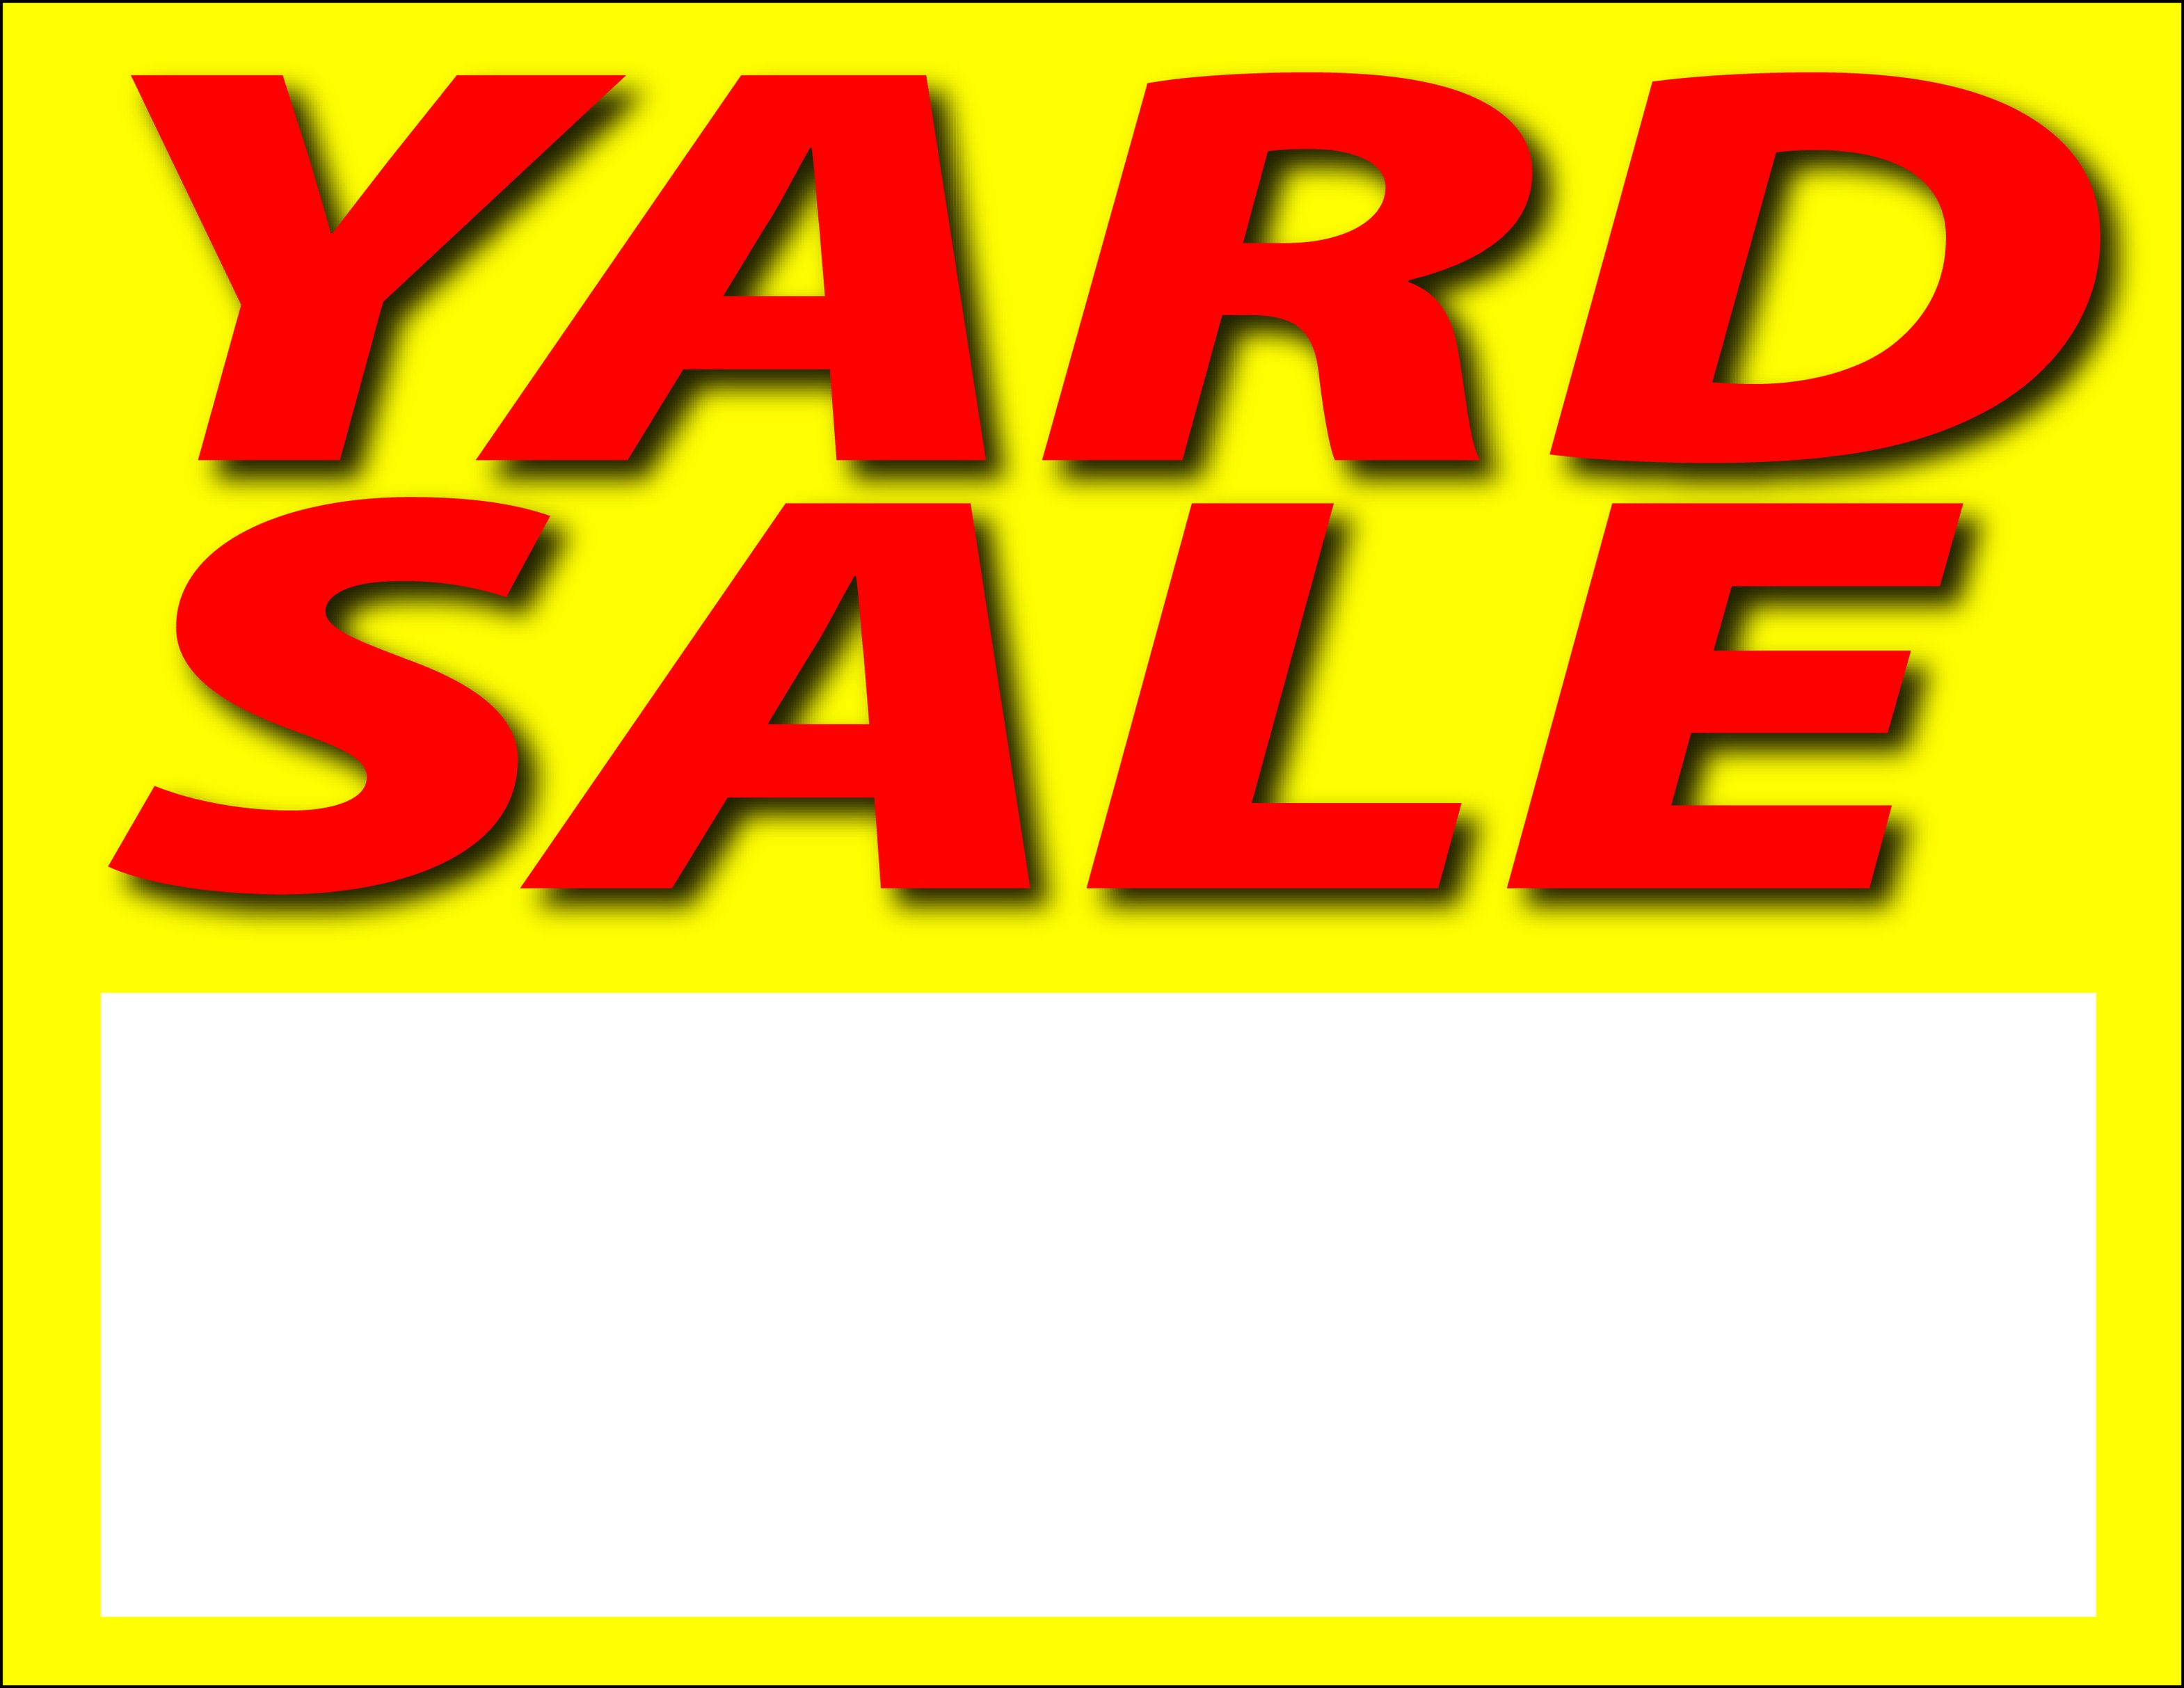 Images for printable yard sale sign clipart free to use clip.